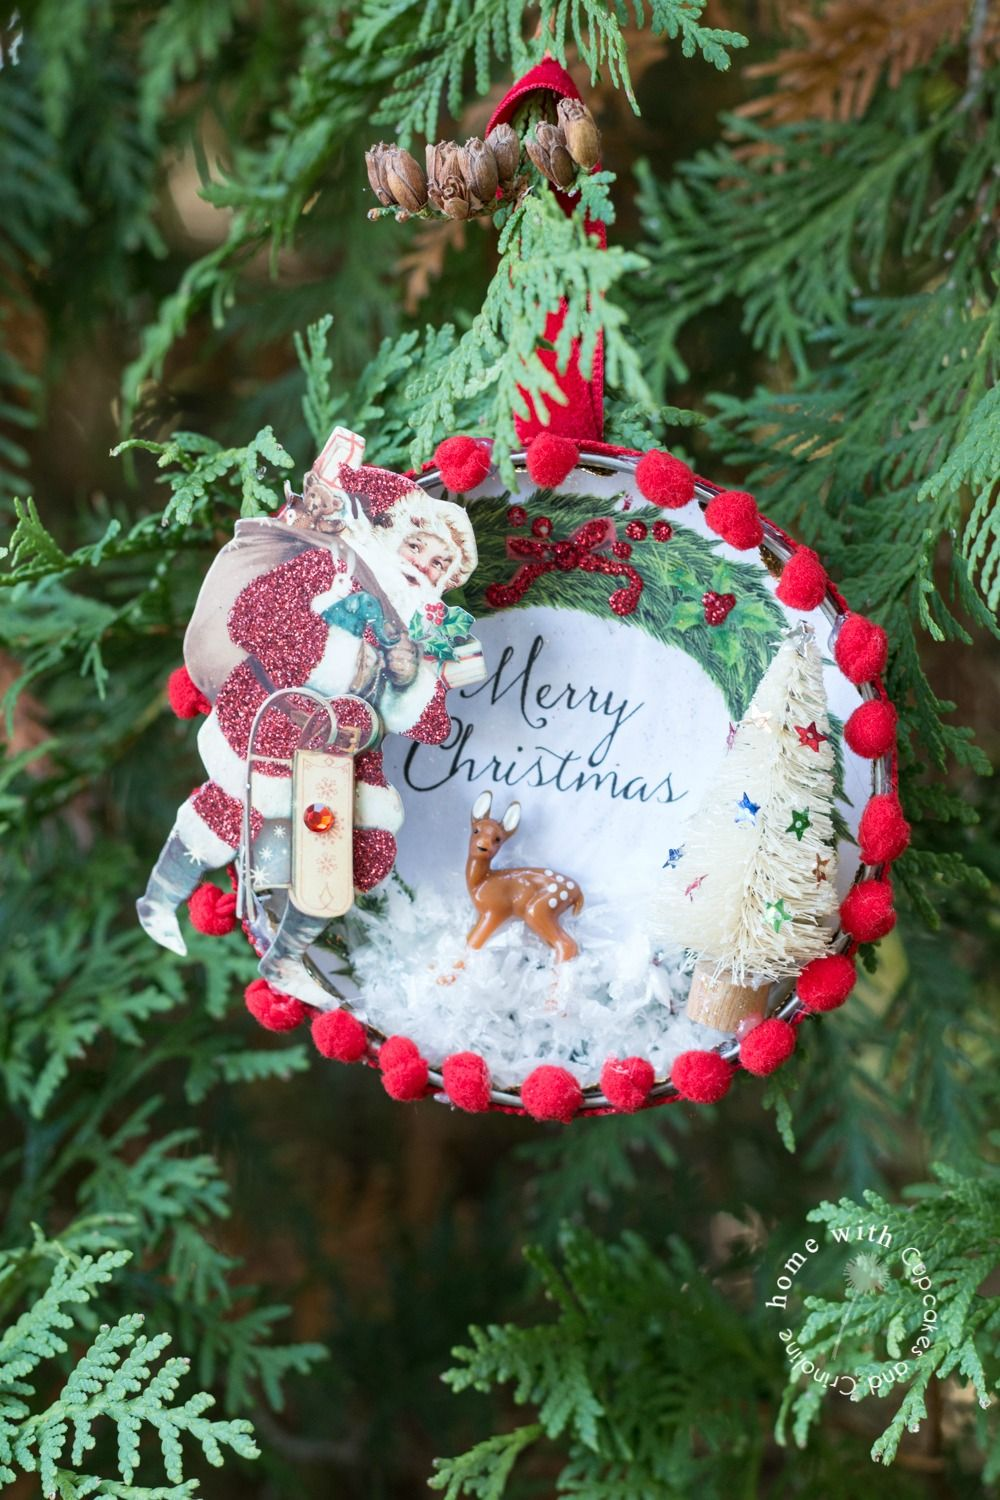 How To Make A Beautiful Vintage Style Christmas Ornament Christmas Ornaments Handmade Christmas Tree Handmade Christmas Ornaments